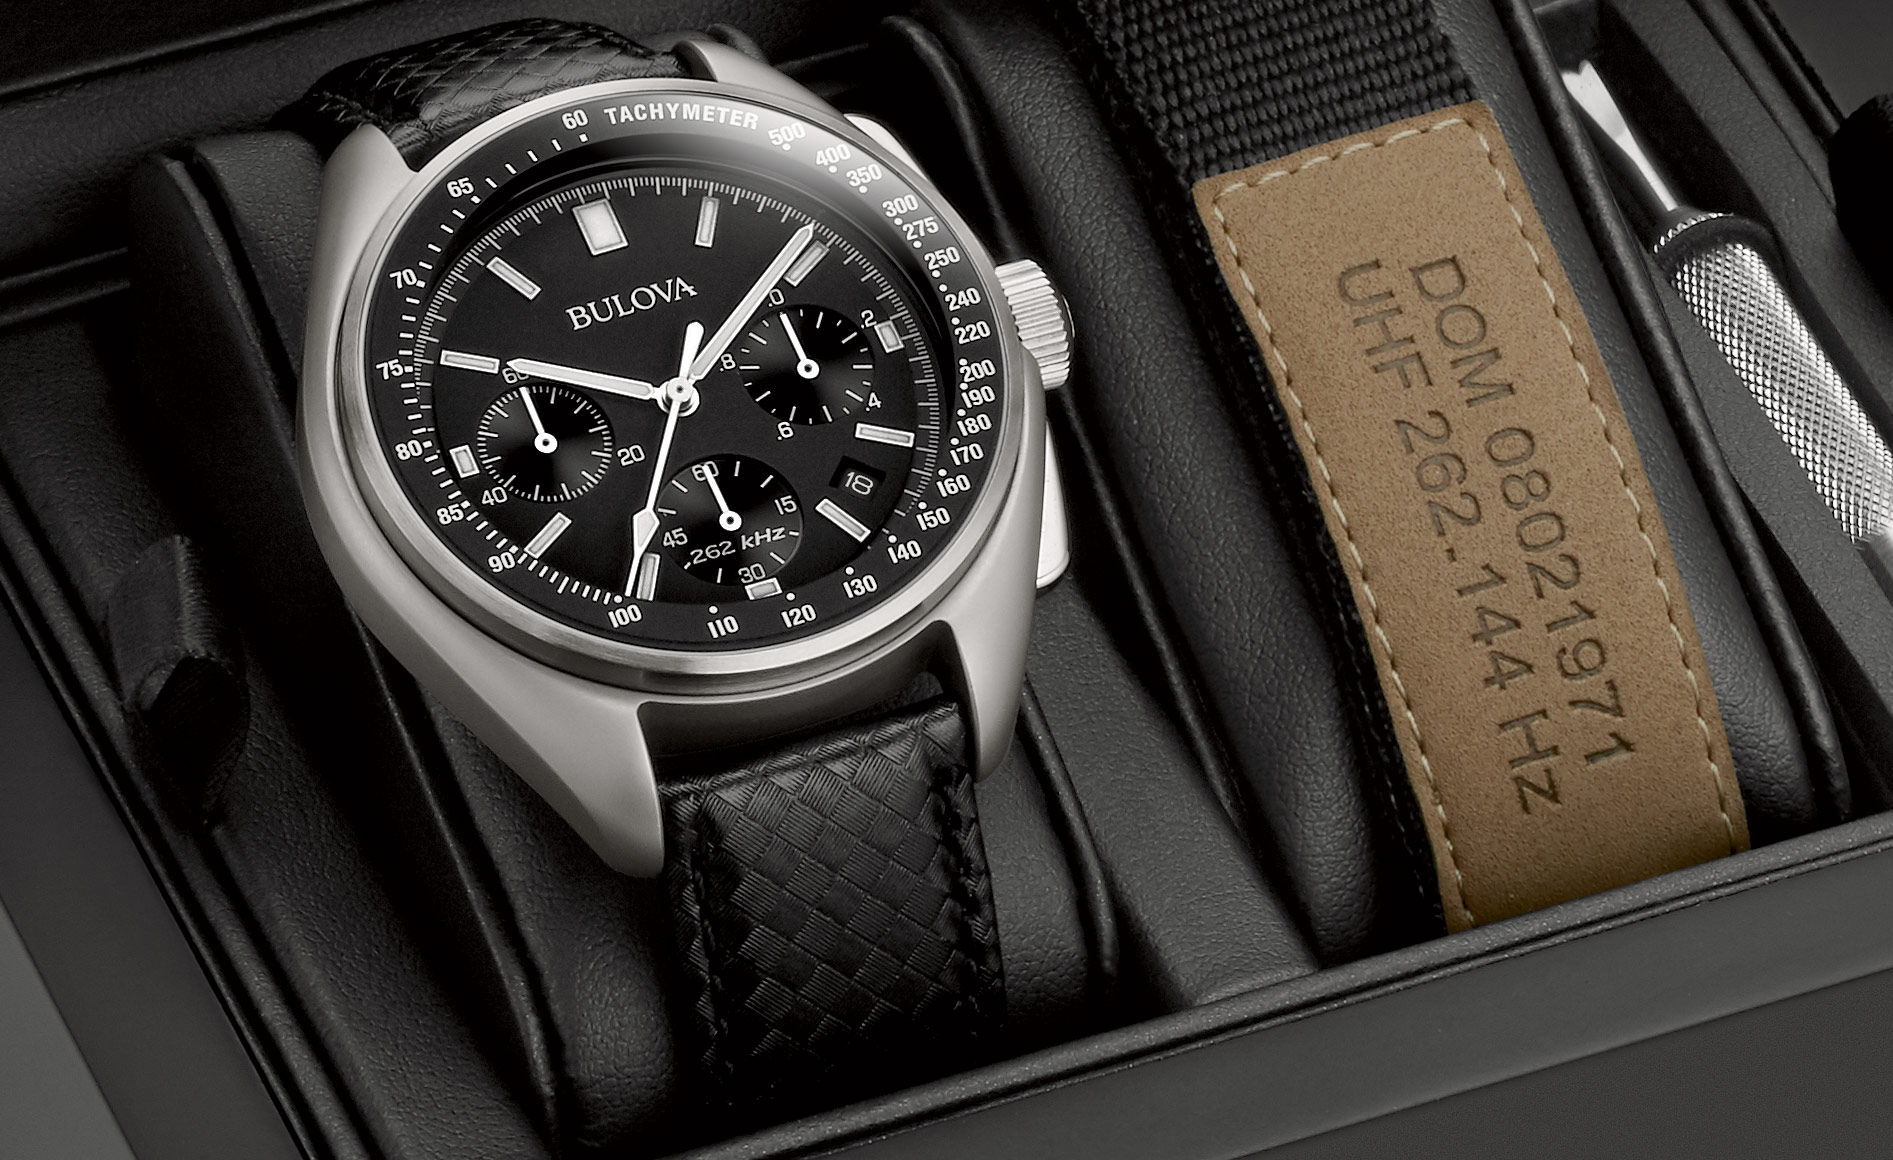 Bulova Revisits The Moon With Their Commemorative Chronograph Watch